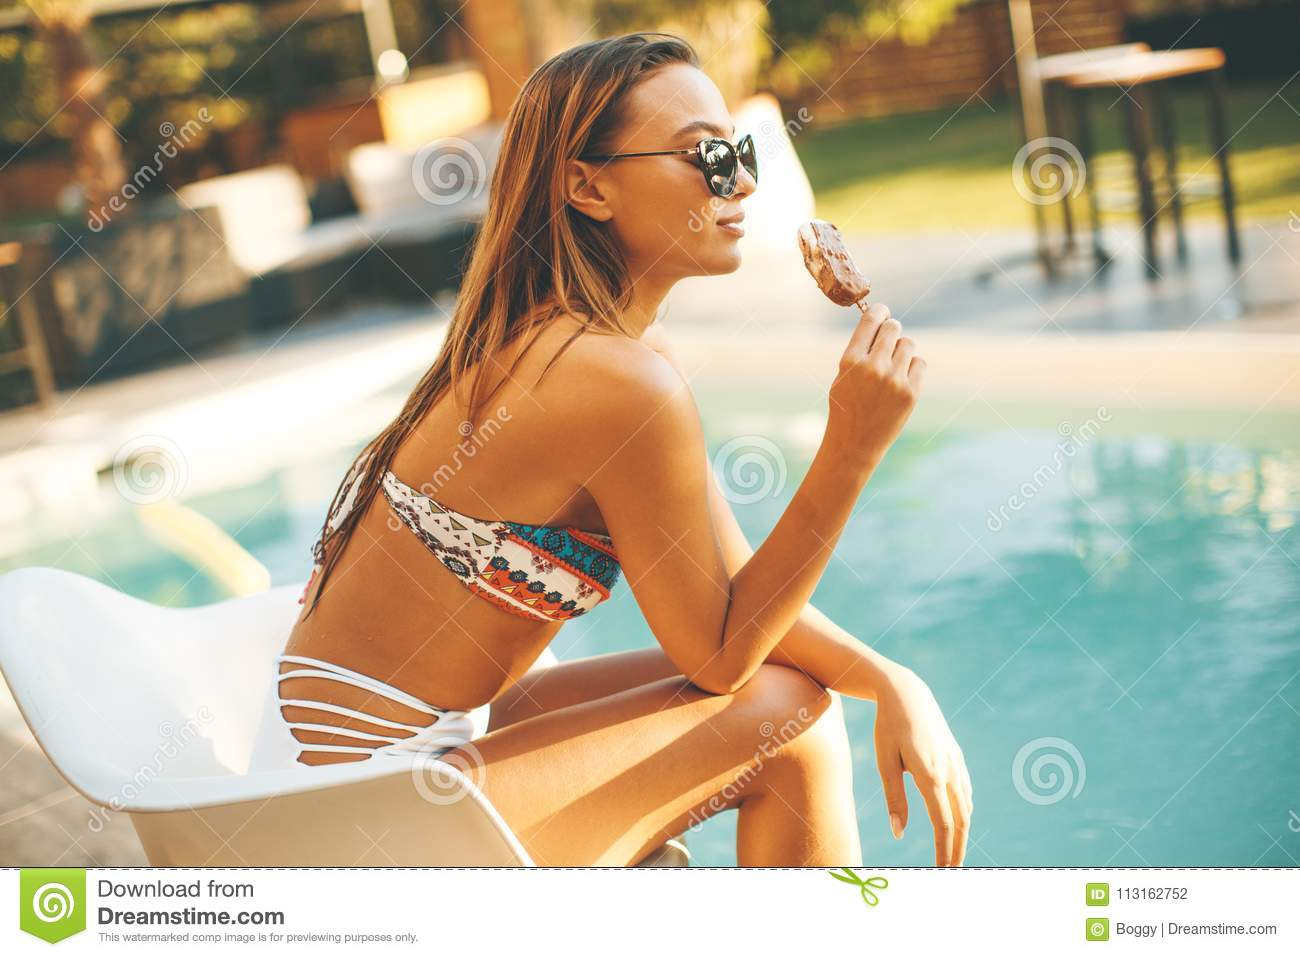 Young woman eating icecream near the swimming pool